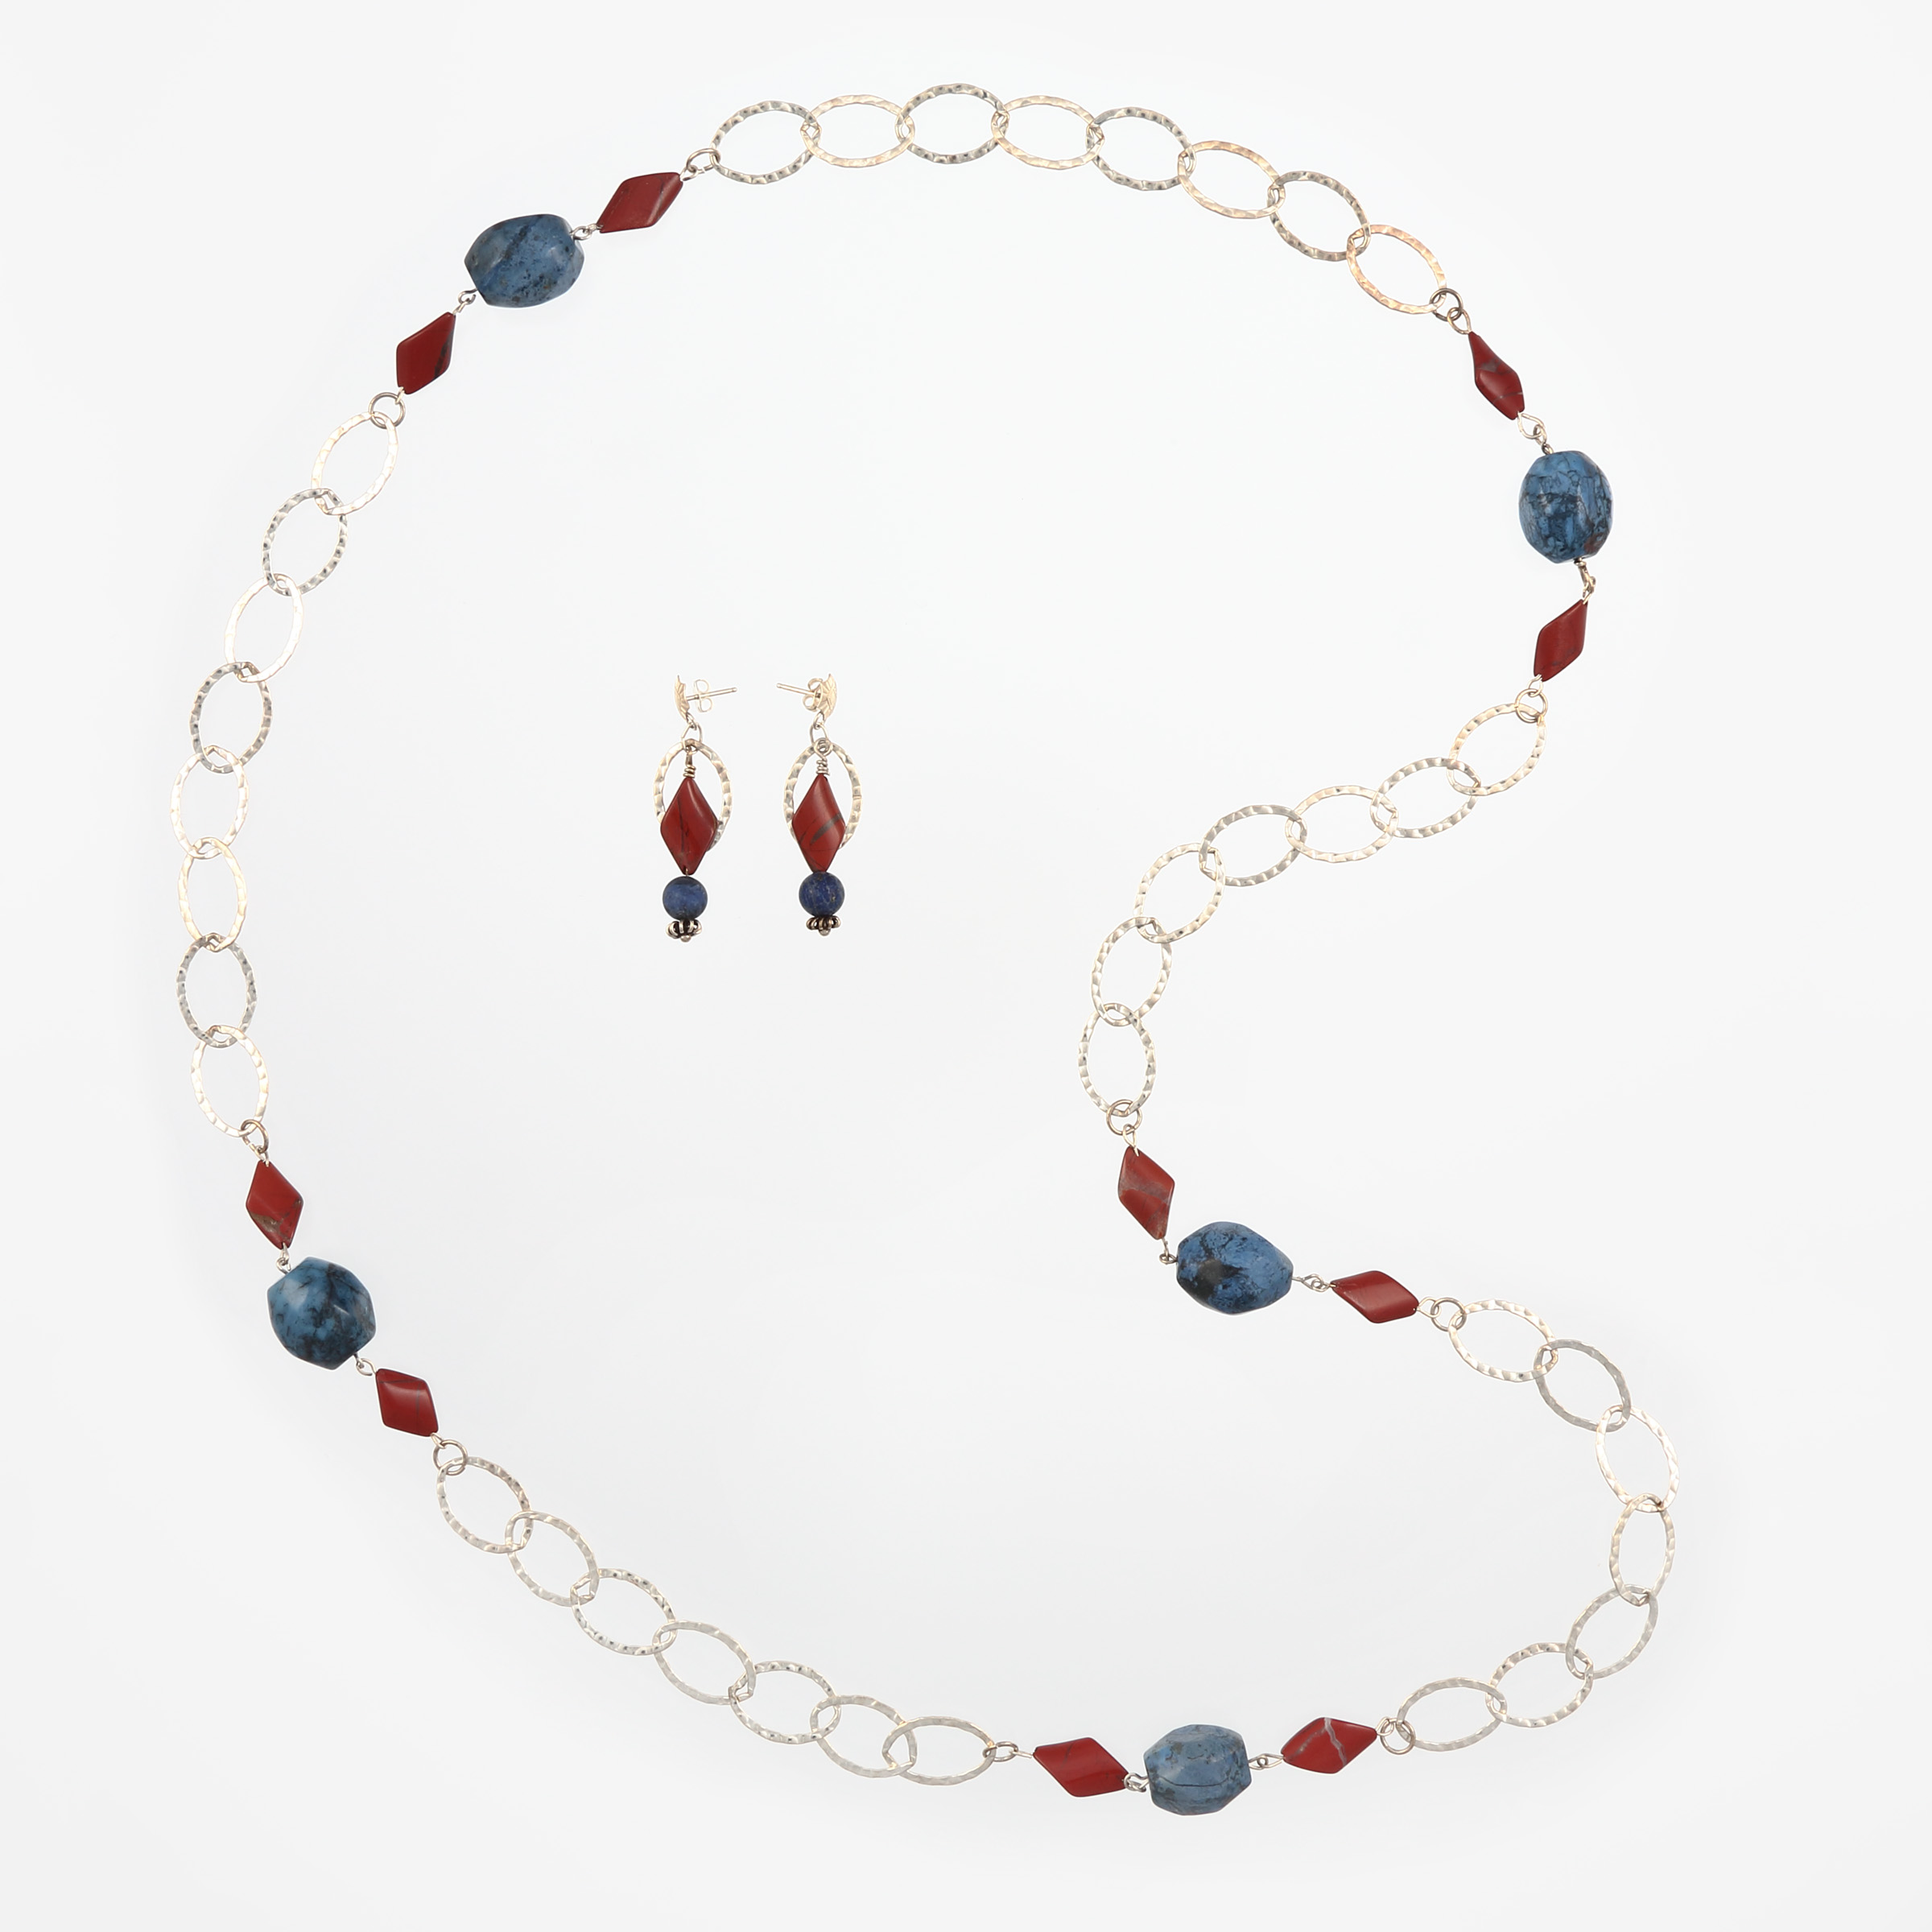 LEATHER AND BLUE JEANS SET- earrings and necklace with semiprecious sodalite and jasper gemstones and sterling silver